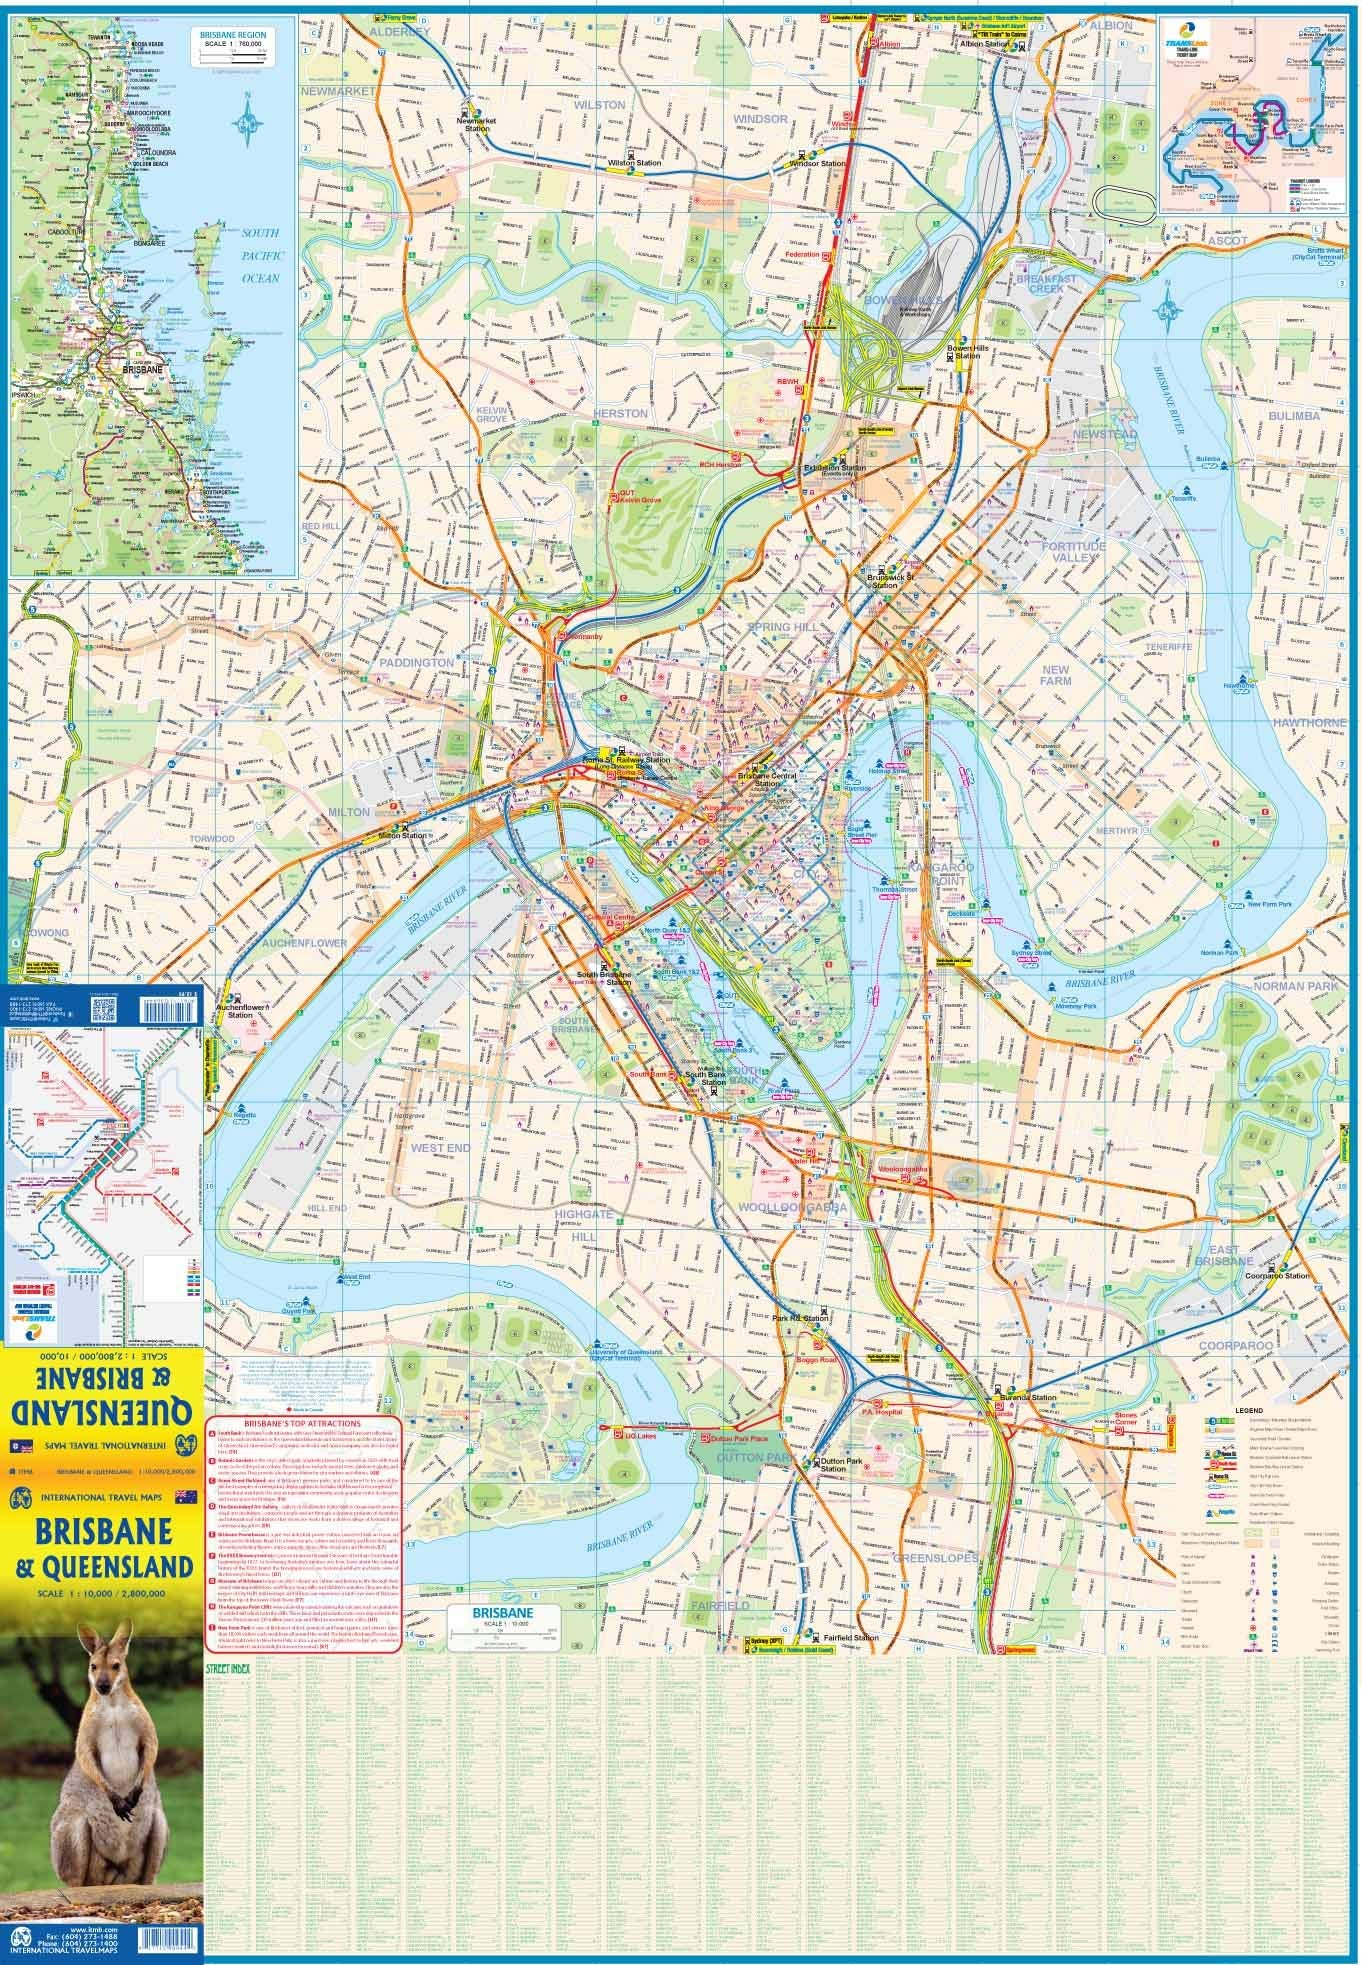 Brisbane & Queensland  ITM Travel Map 2e